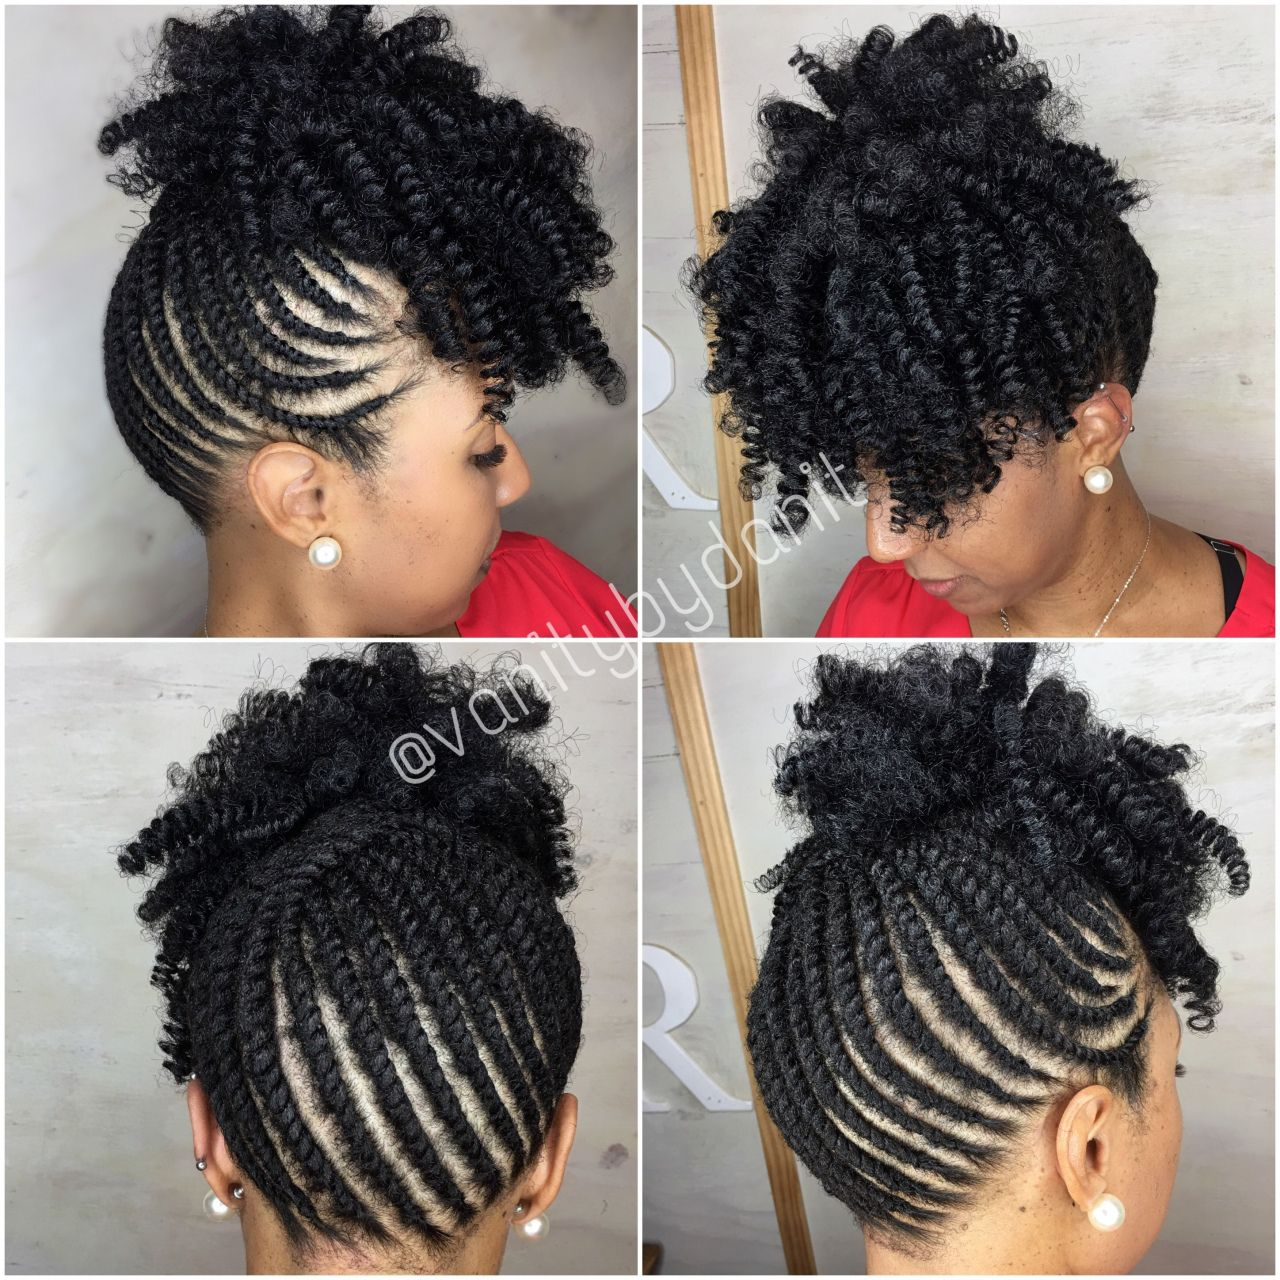 2019 African American Flat Twist Updo Hairstyles Unique Twist Up Crochet Hair Styles Crochet Cr Hair Twist Styles Braided Updo Black Hair Natural Hair Mohawk